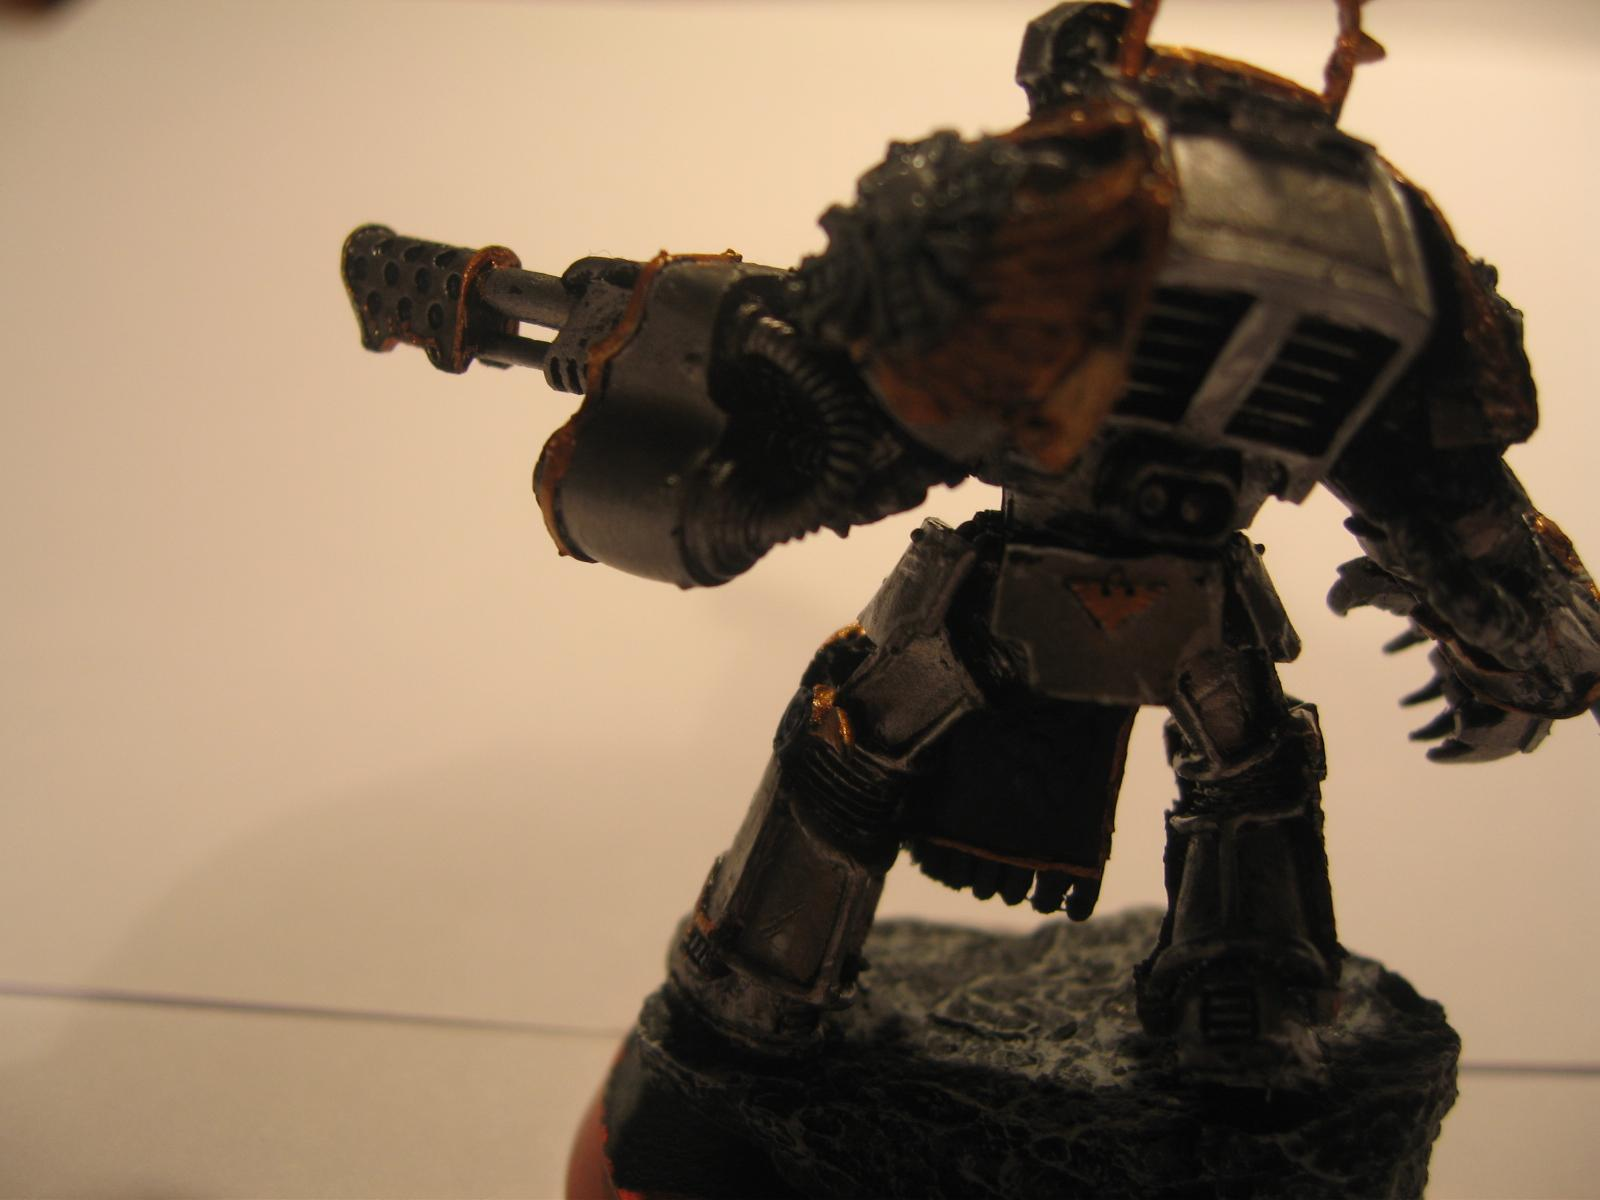 Heavy Flamer, Space Marines, Tactical Dreadnought Armour, Terminator Armor, Warhammer 40,000